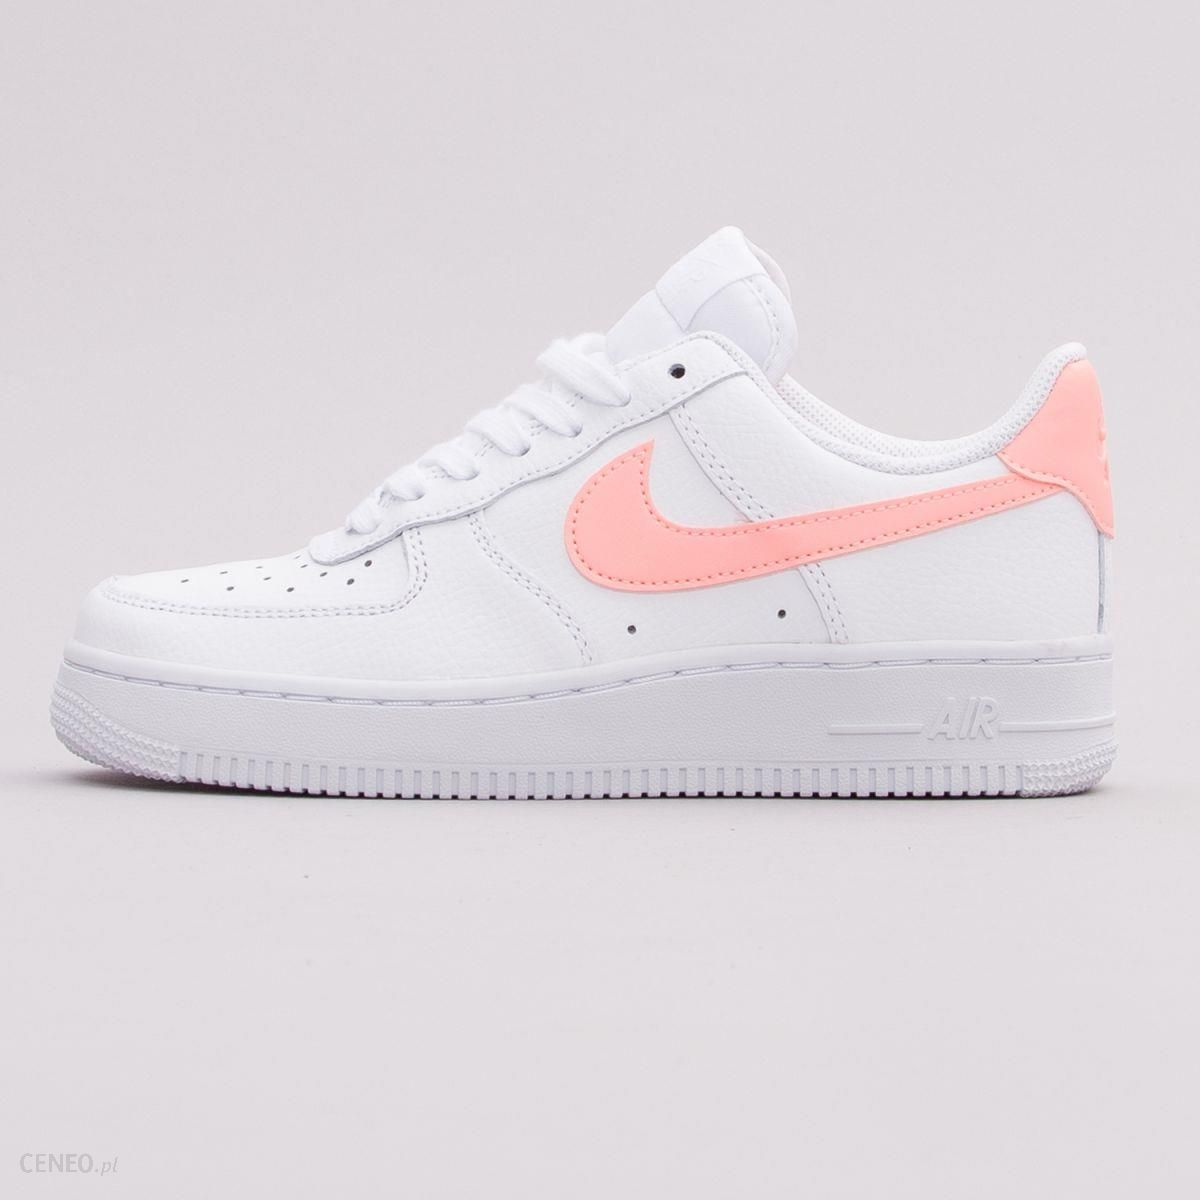 Nike WMNS AIR FORCE 1 '07 AH0287 102 Ceny i opinie Ceneo.pl